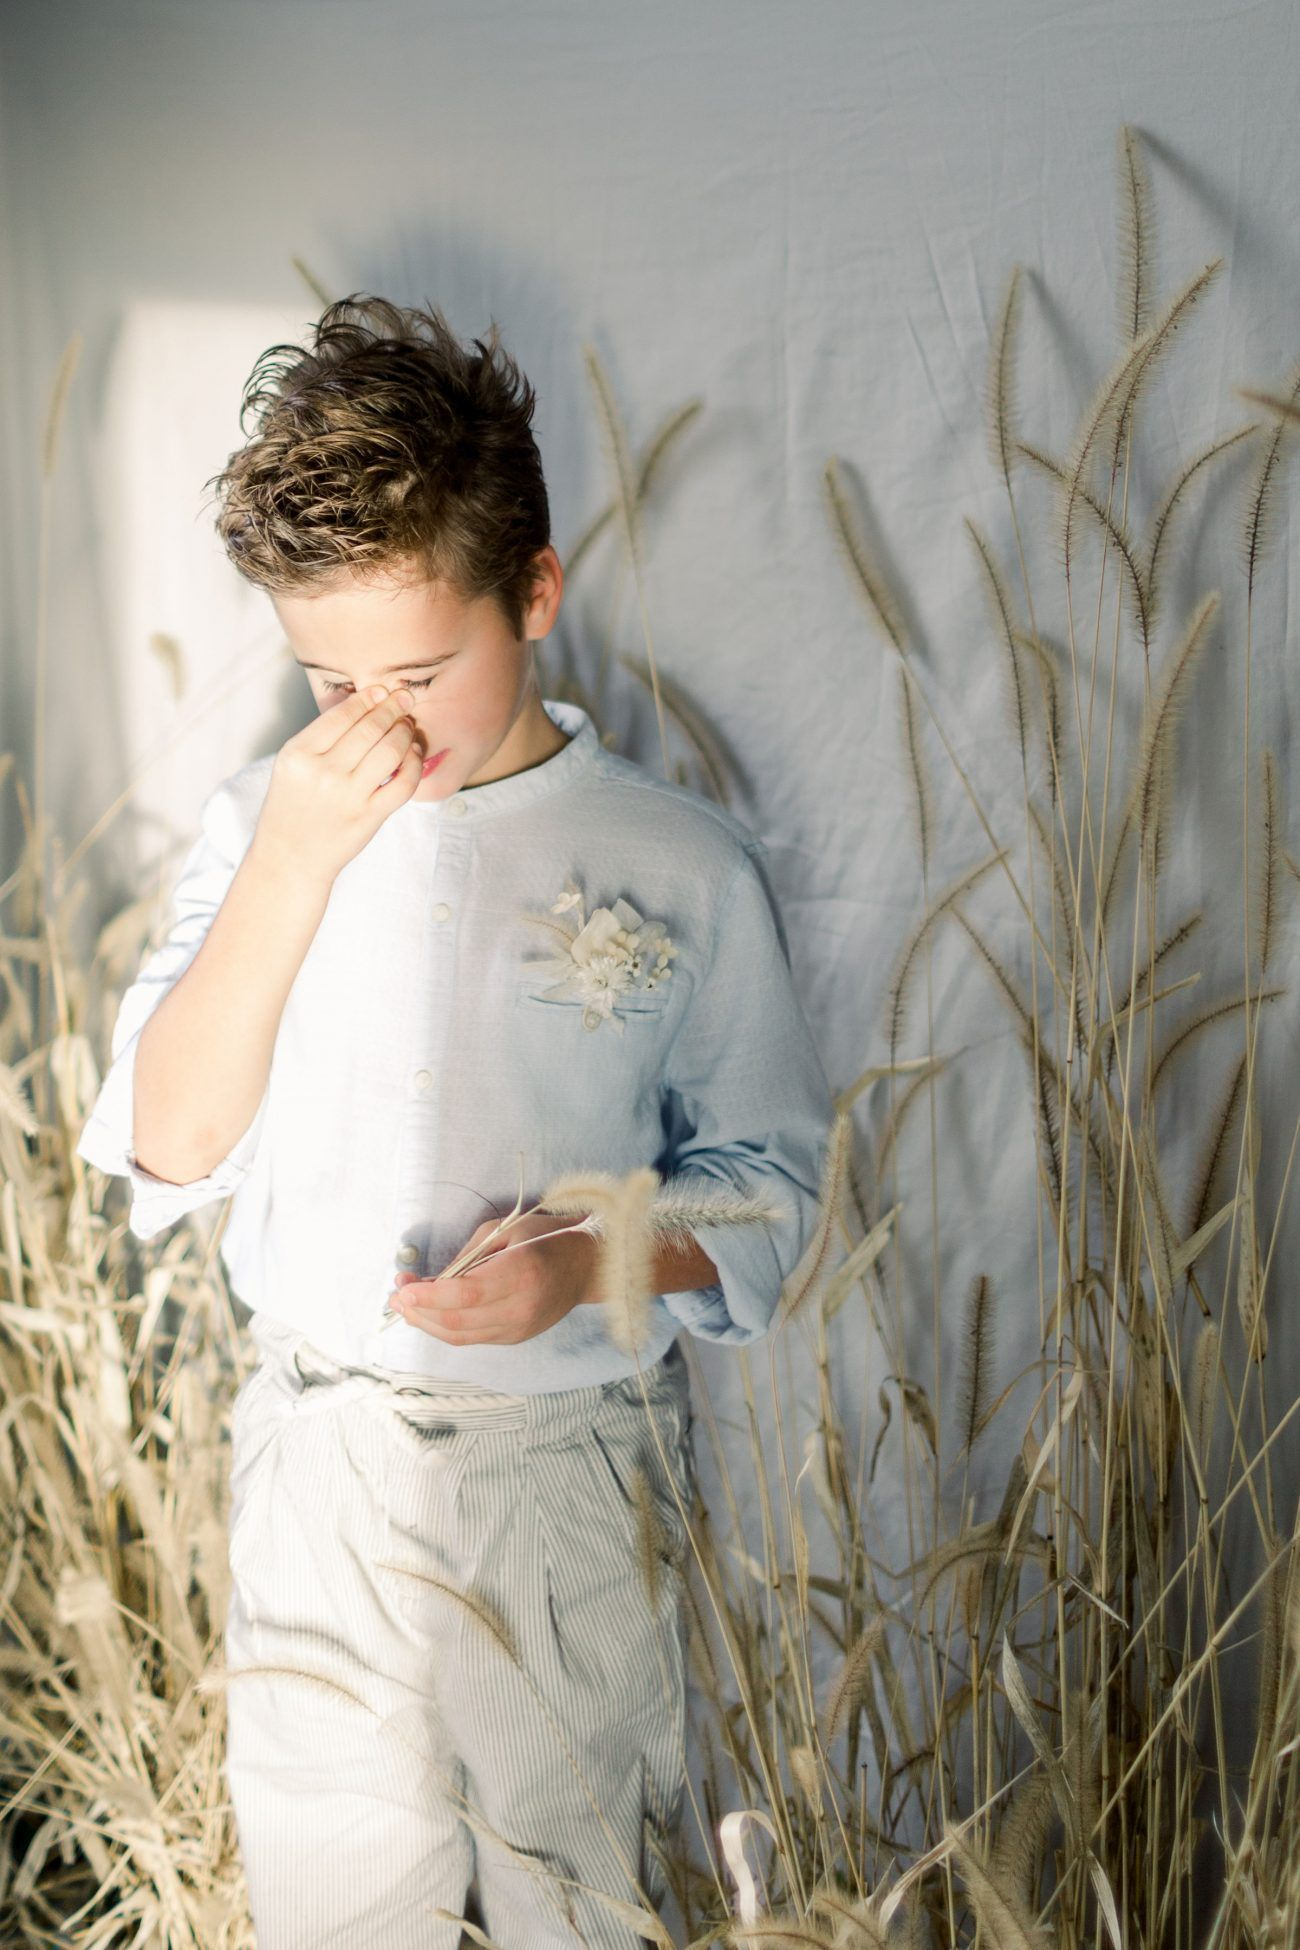 Emily-Michelson-Modern-Wedding-Dress-Children-Little-Groomsmen-10